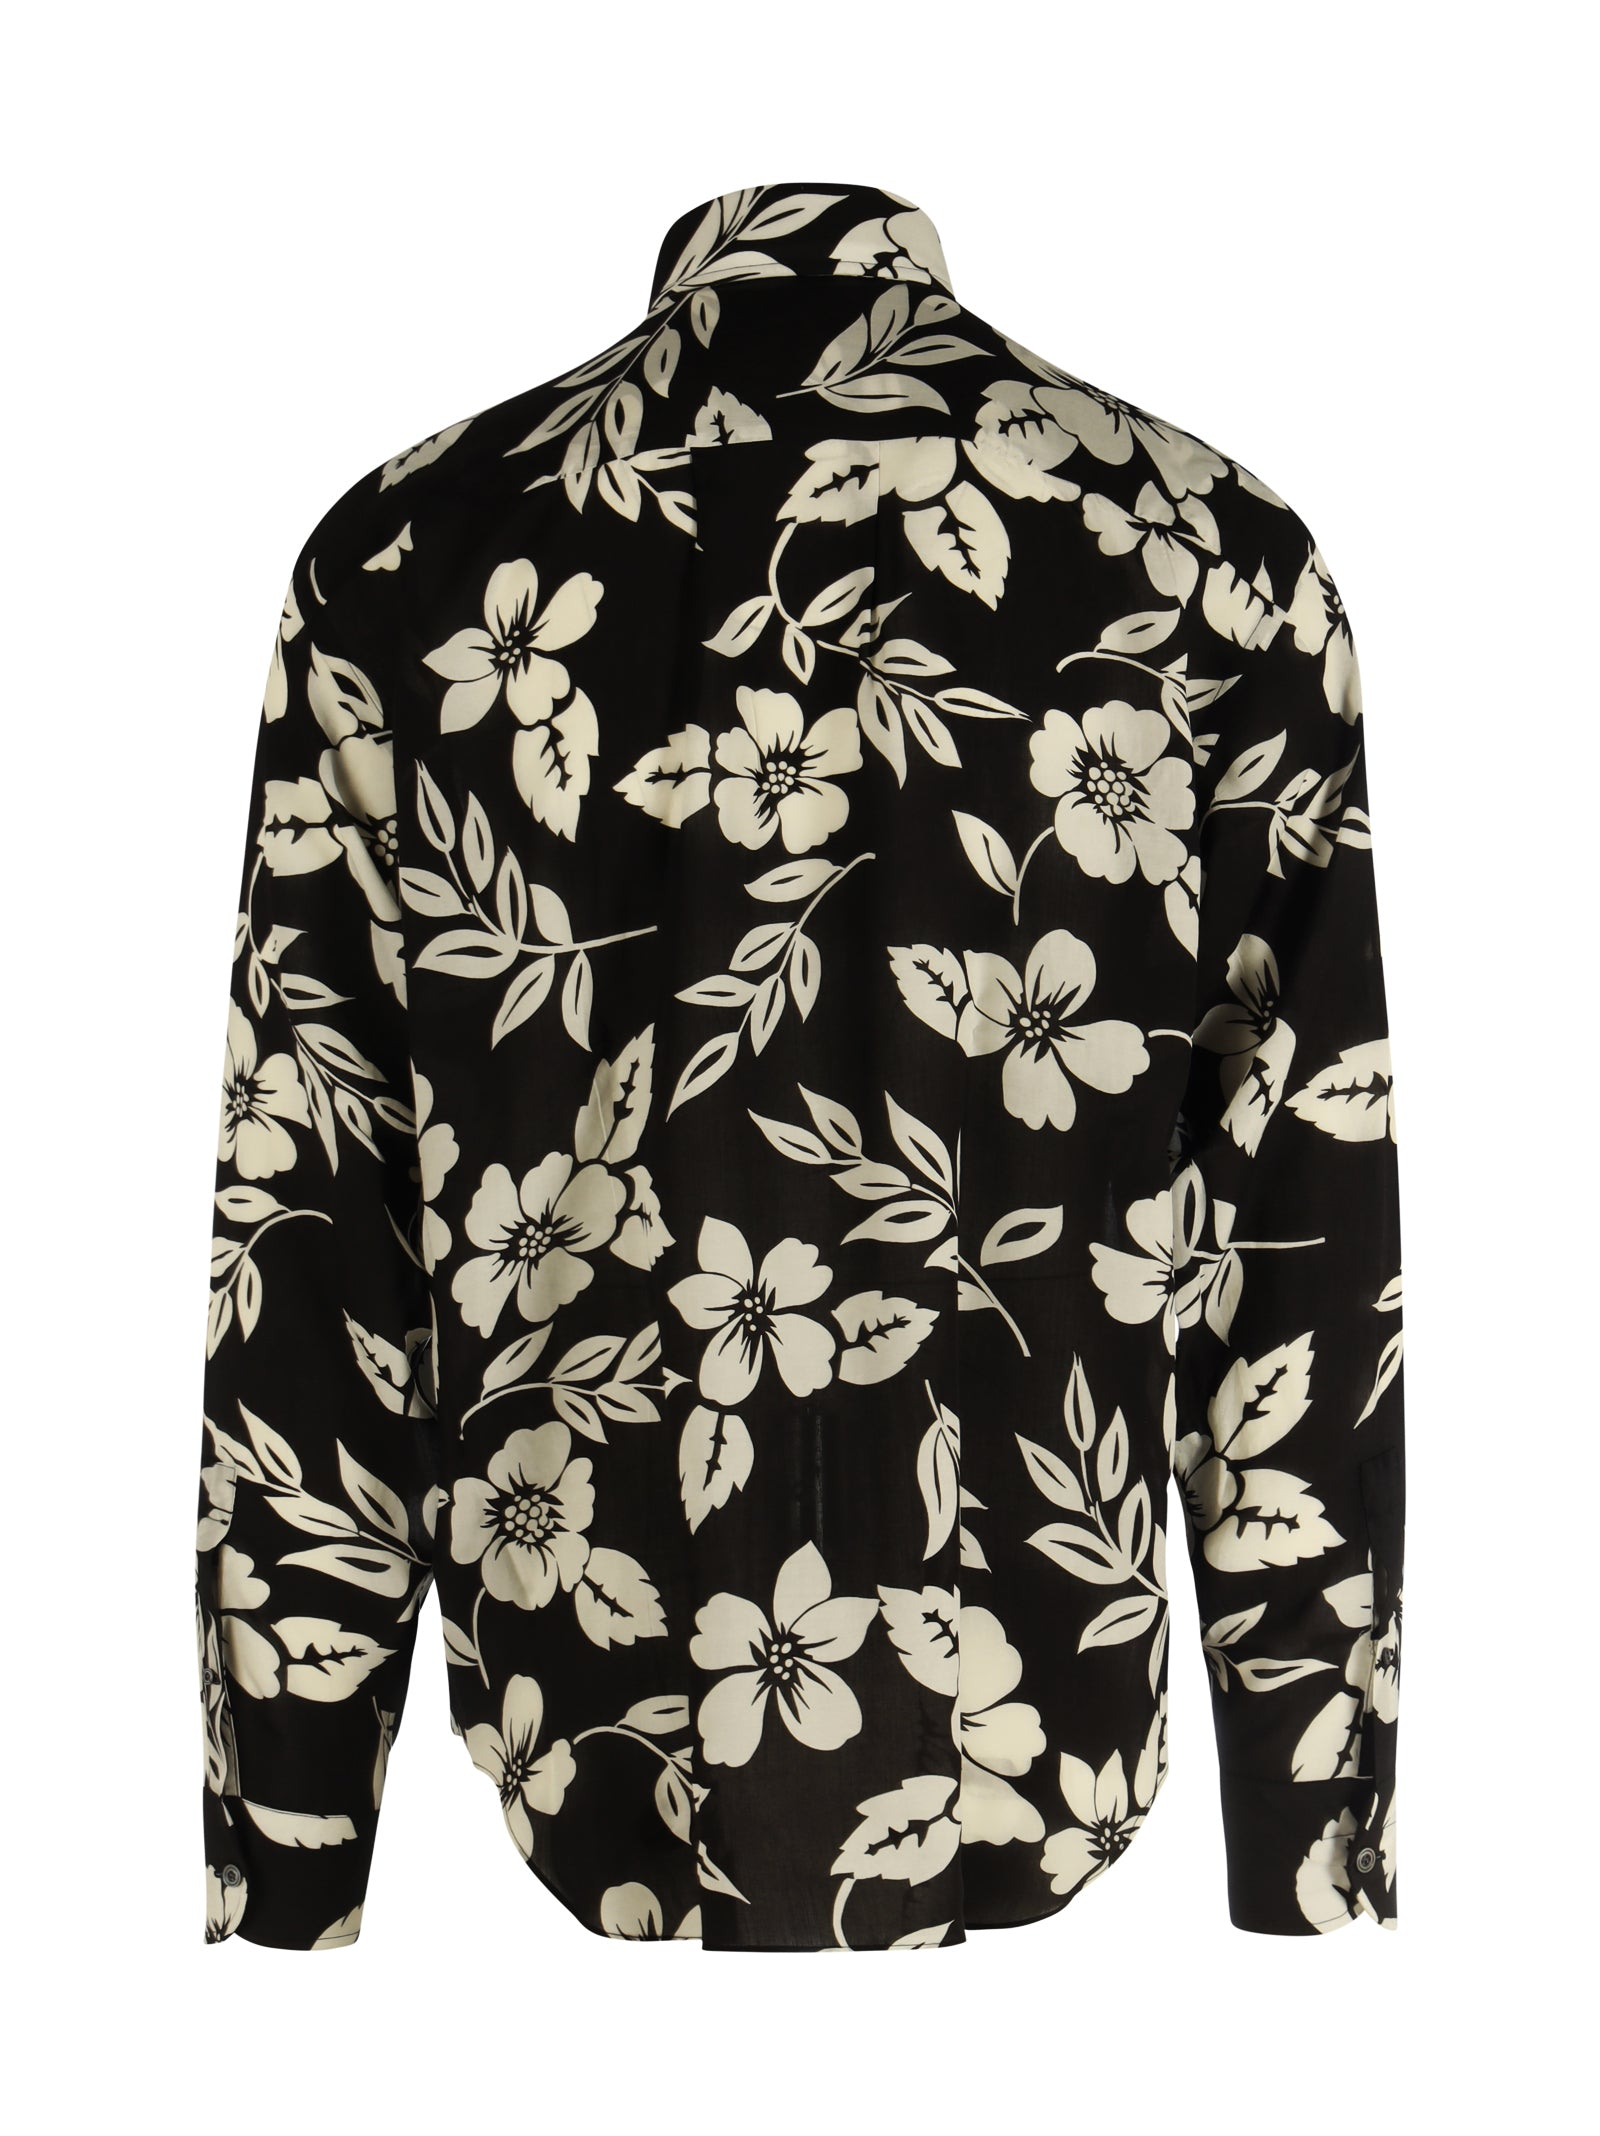 GRAPHIC FLORAL PRINTED SHIRT